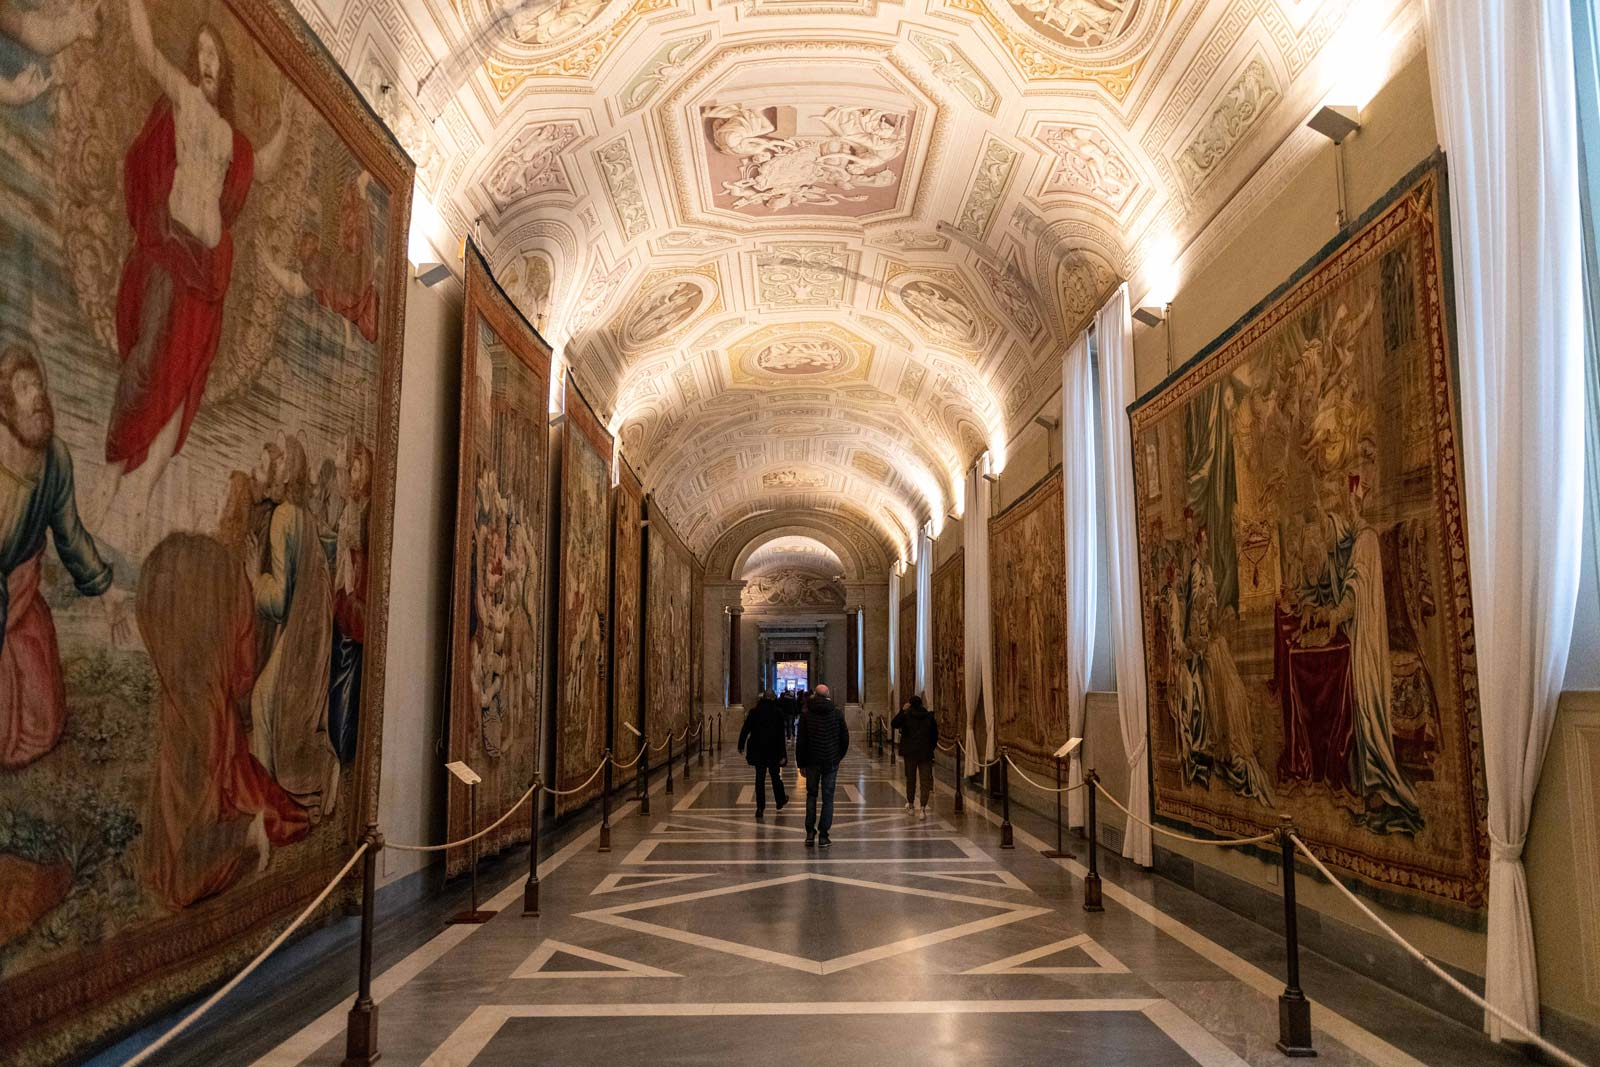 See the famous Gallery of the Maps of Italy and the Gallery of the Tapestries, a rich series of tapestries set up in 1838.